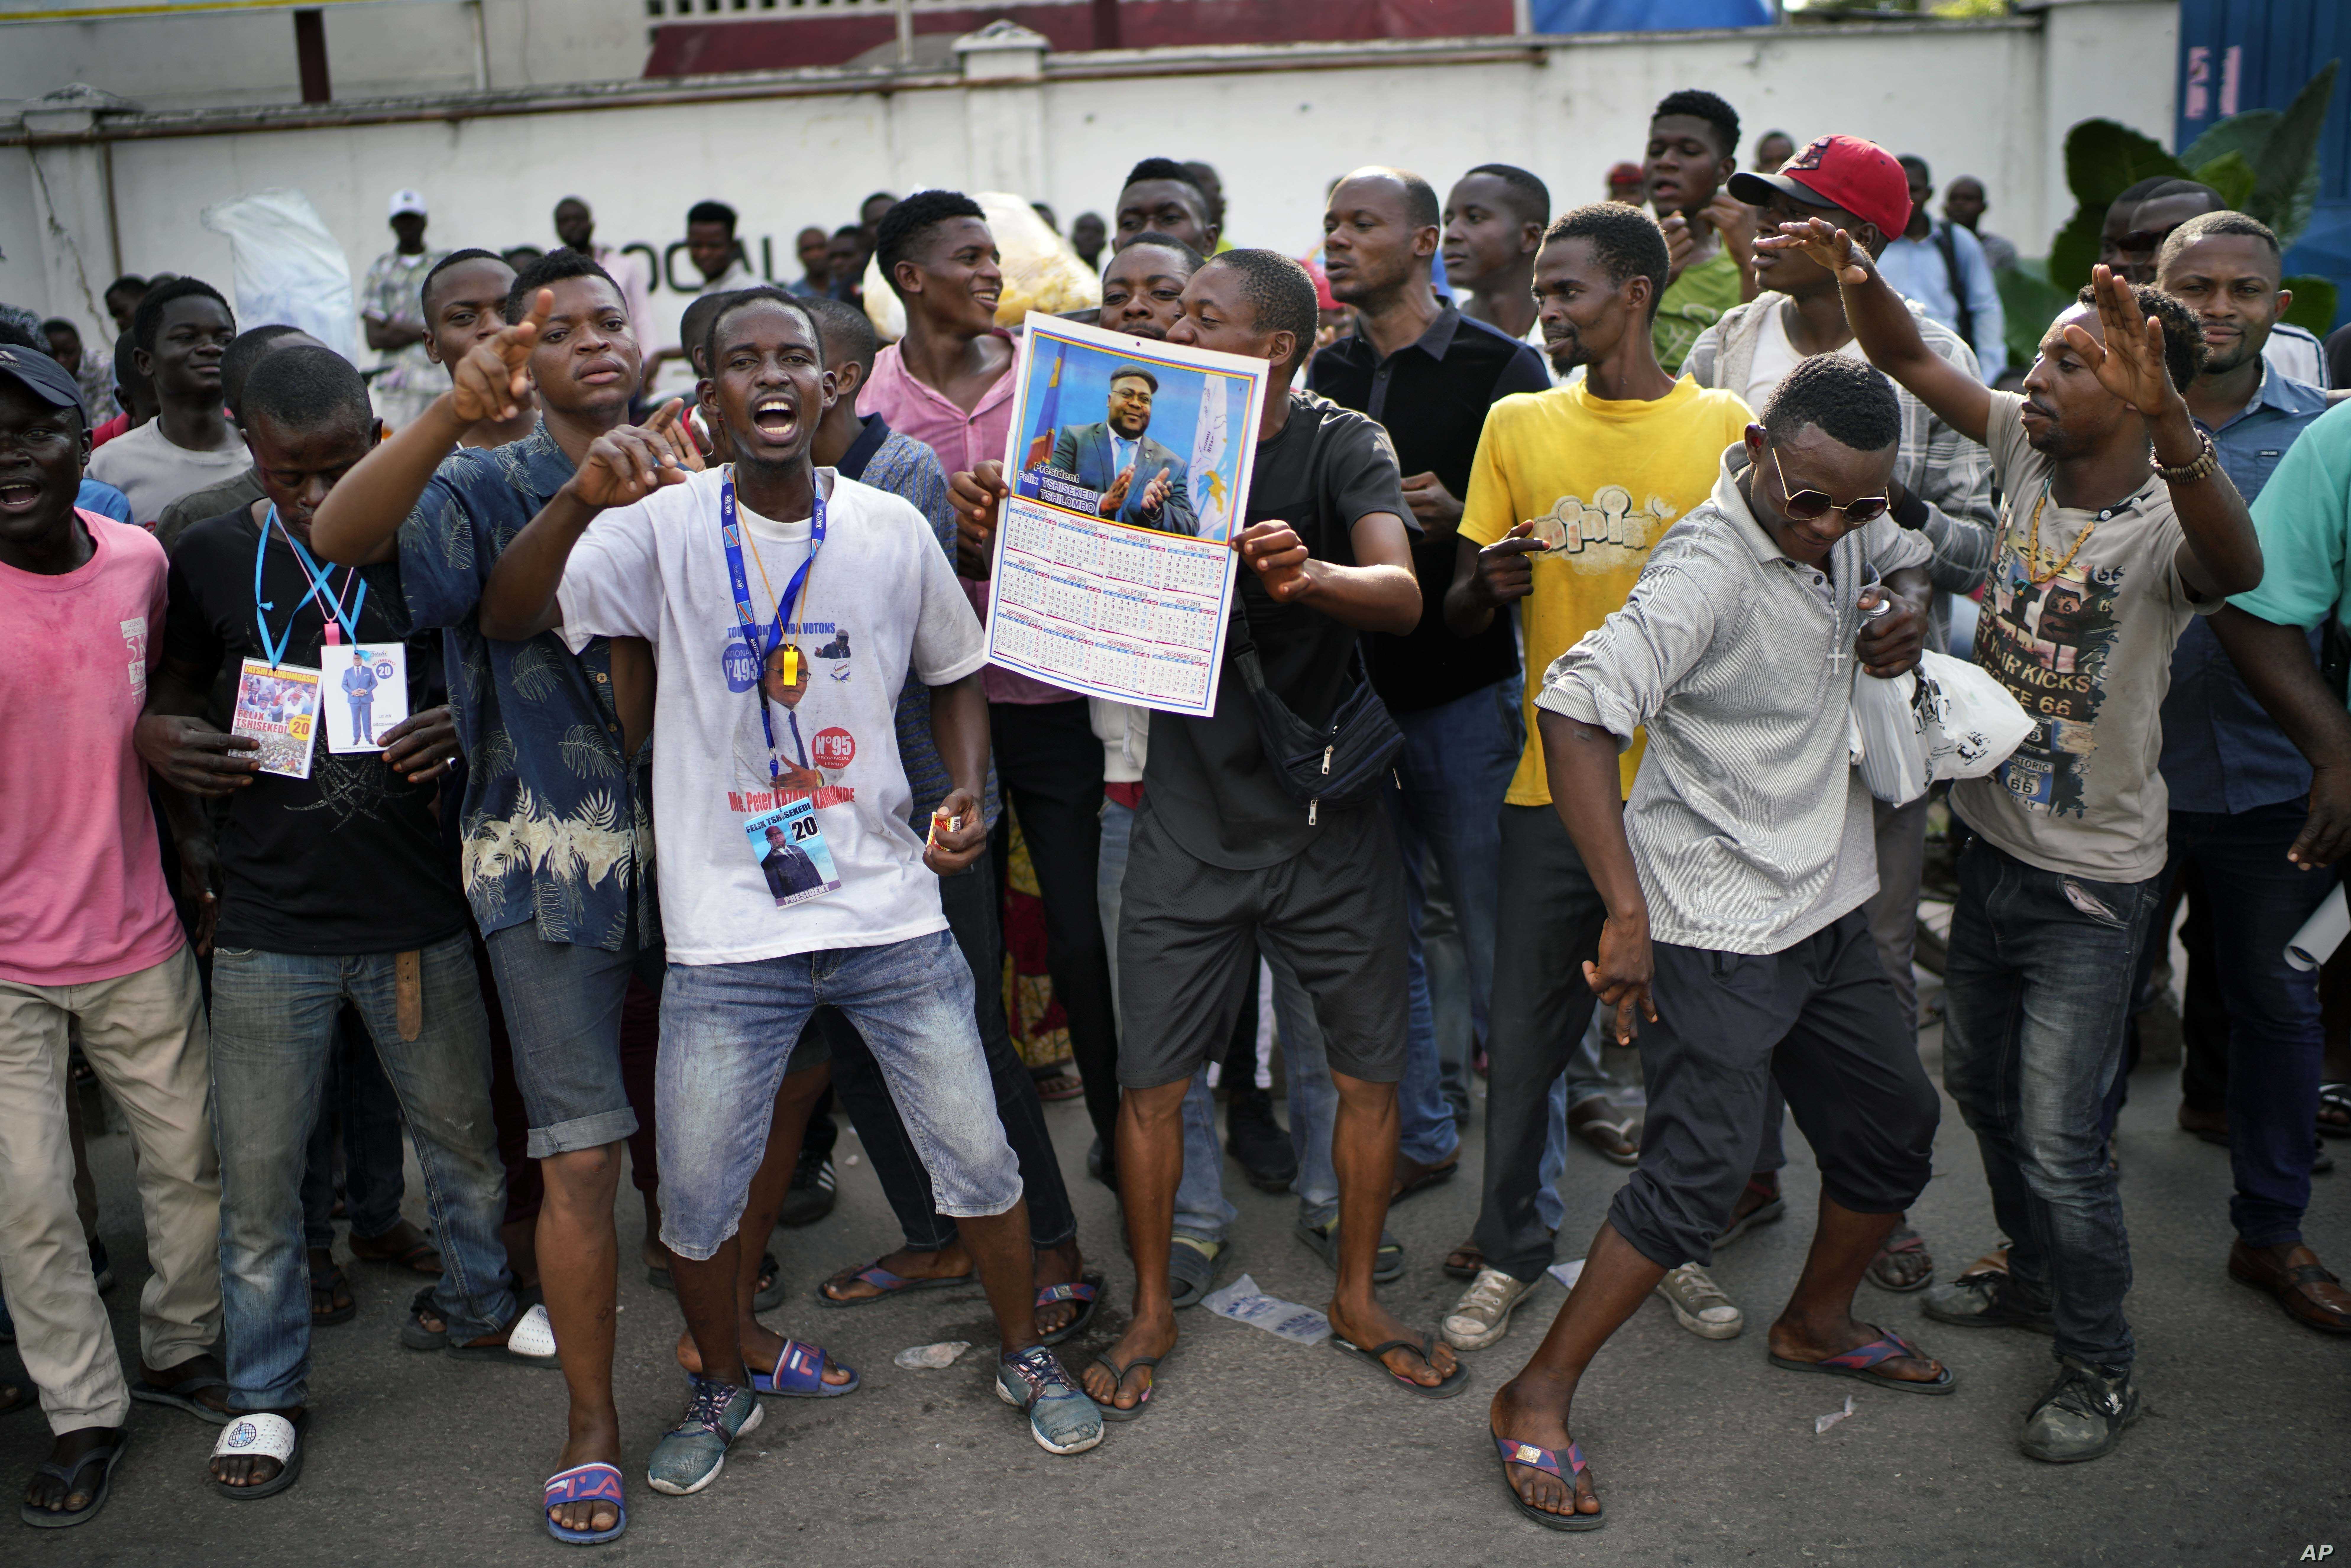 Congolese supporters of opposition presidential candidate Felix Tshisekedi stand outside the UDPS party headquarters in Kinshasa, Congo, Jan. 7, 2019.